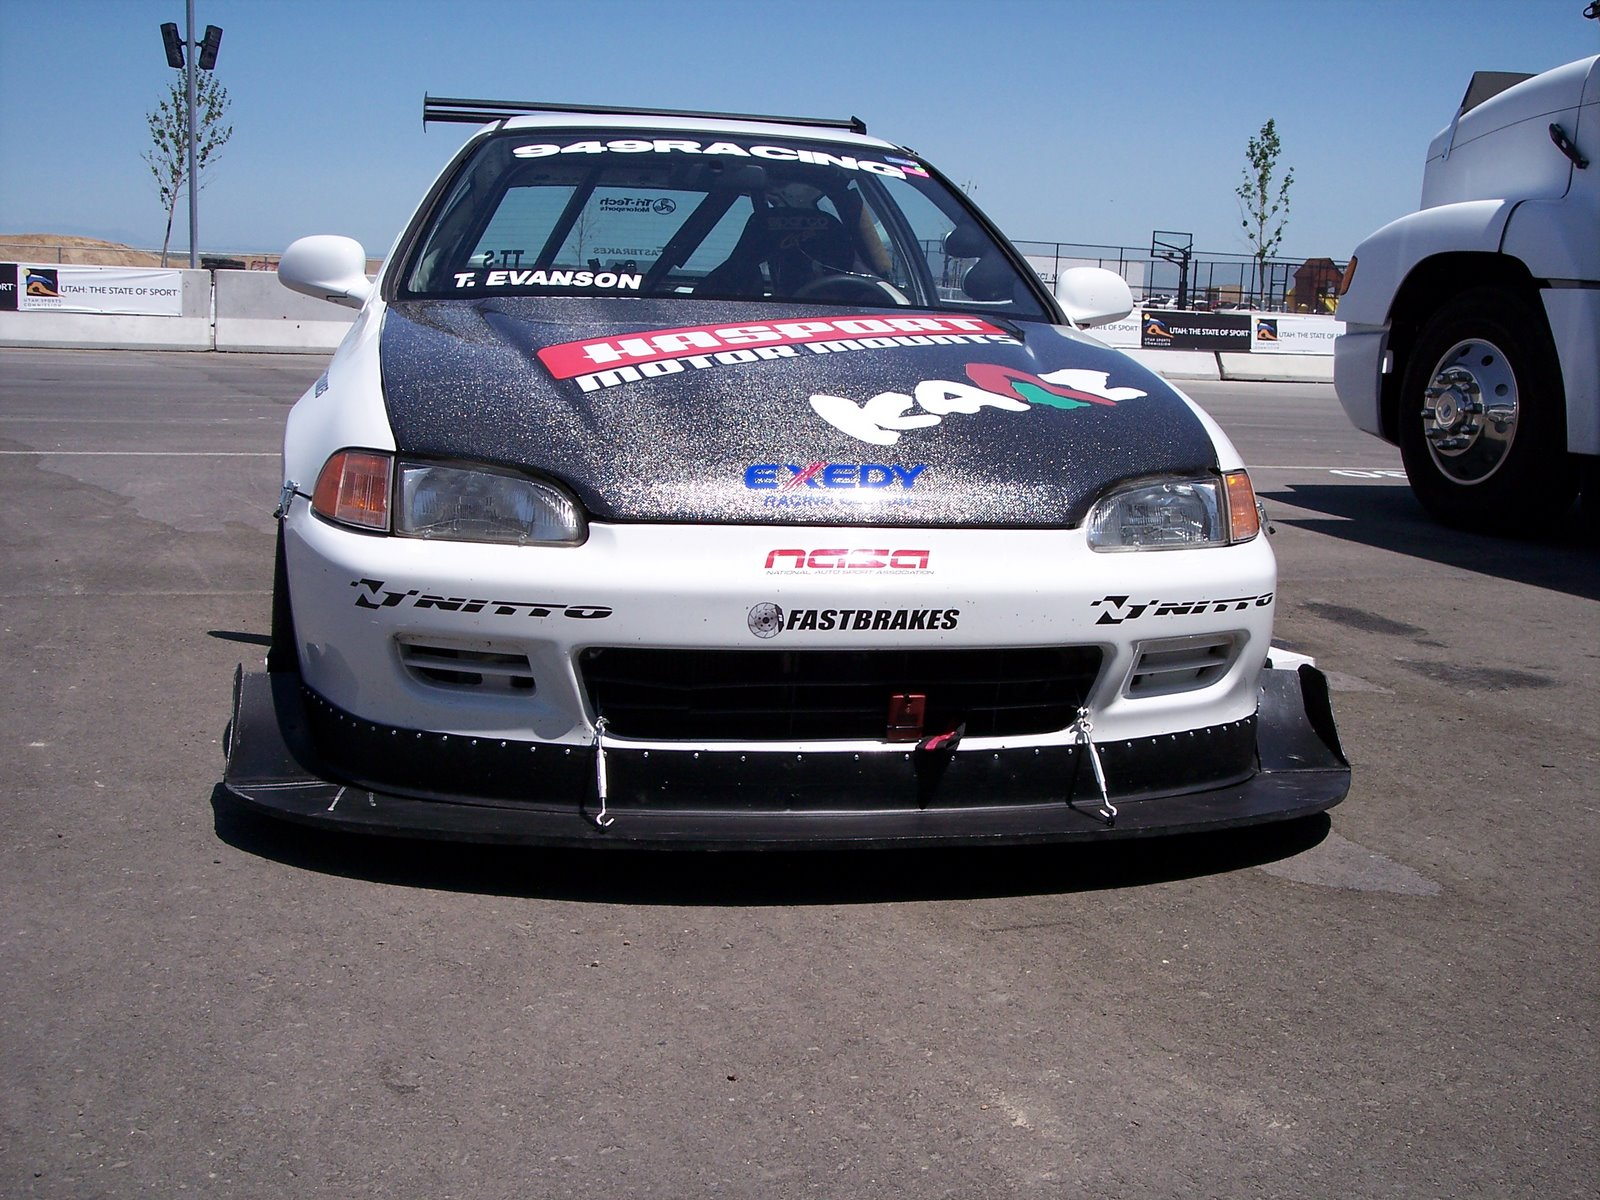 Super sized front splitter on Tag Evanson's Civic gives the needed down force